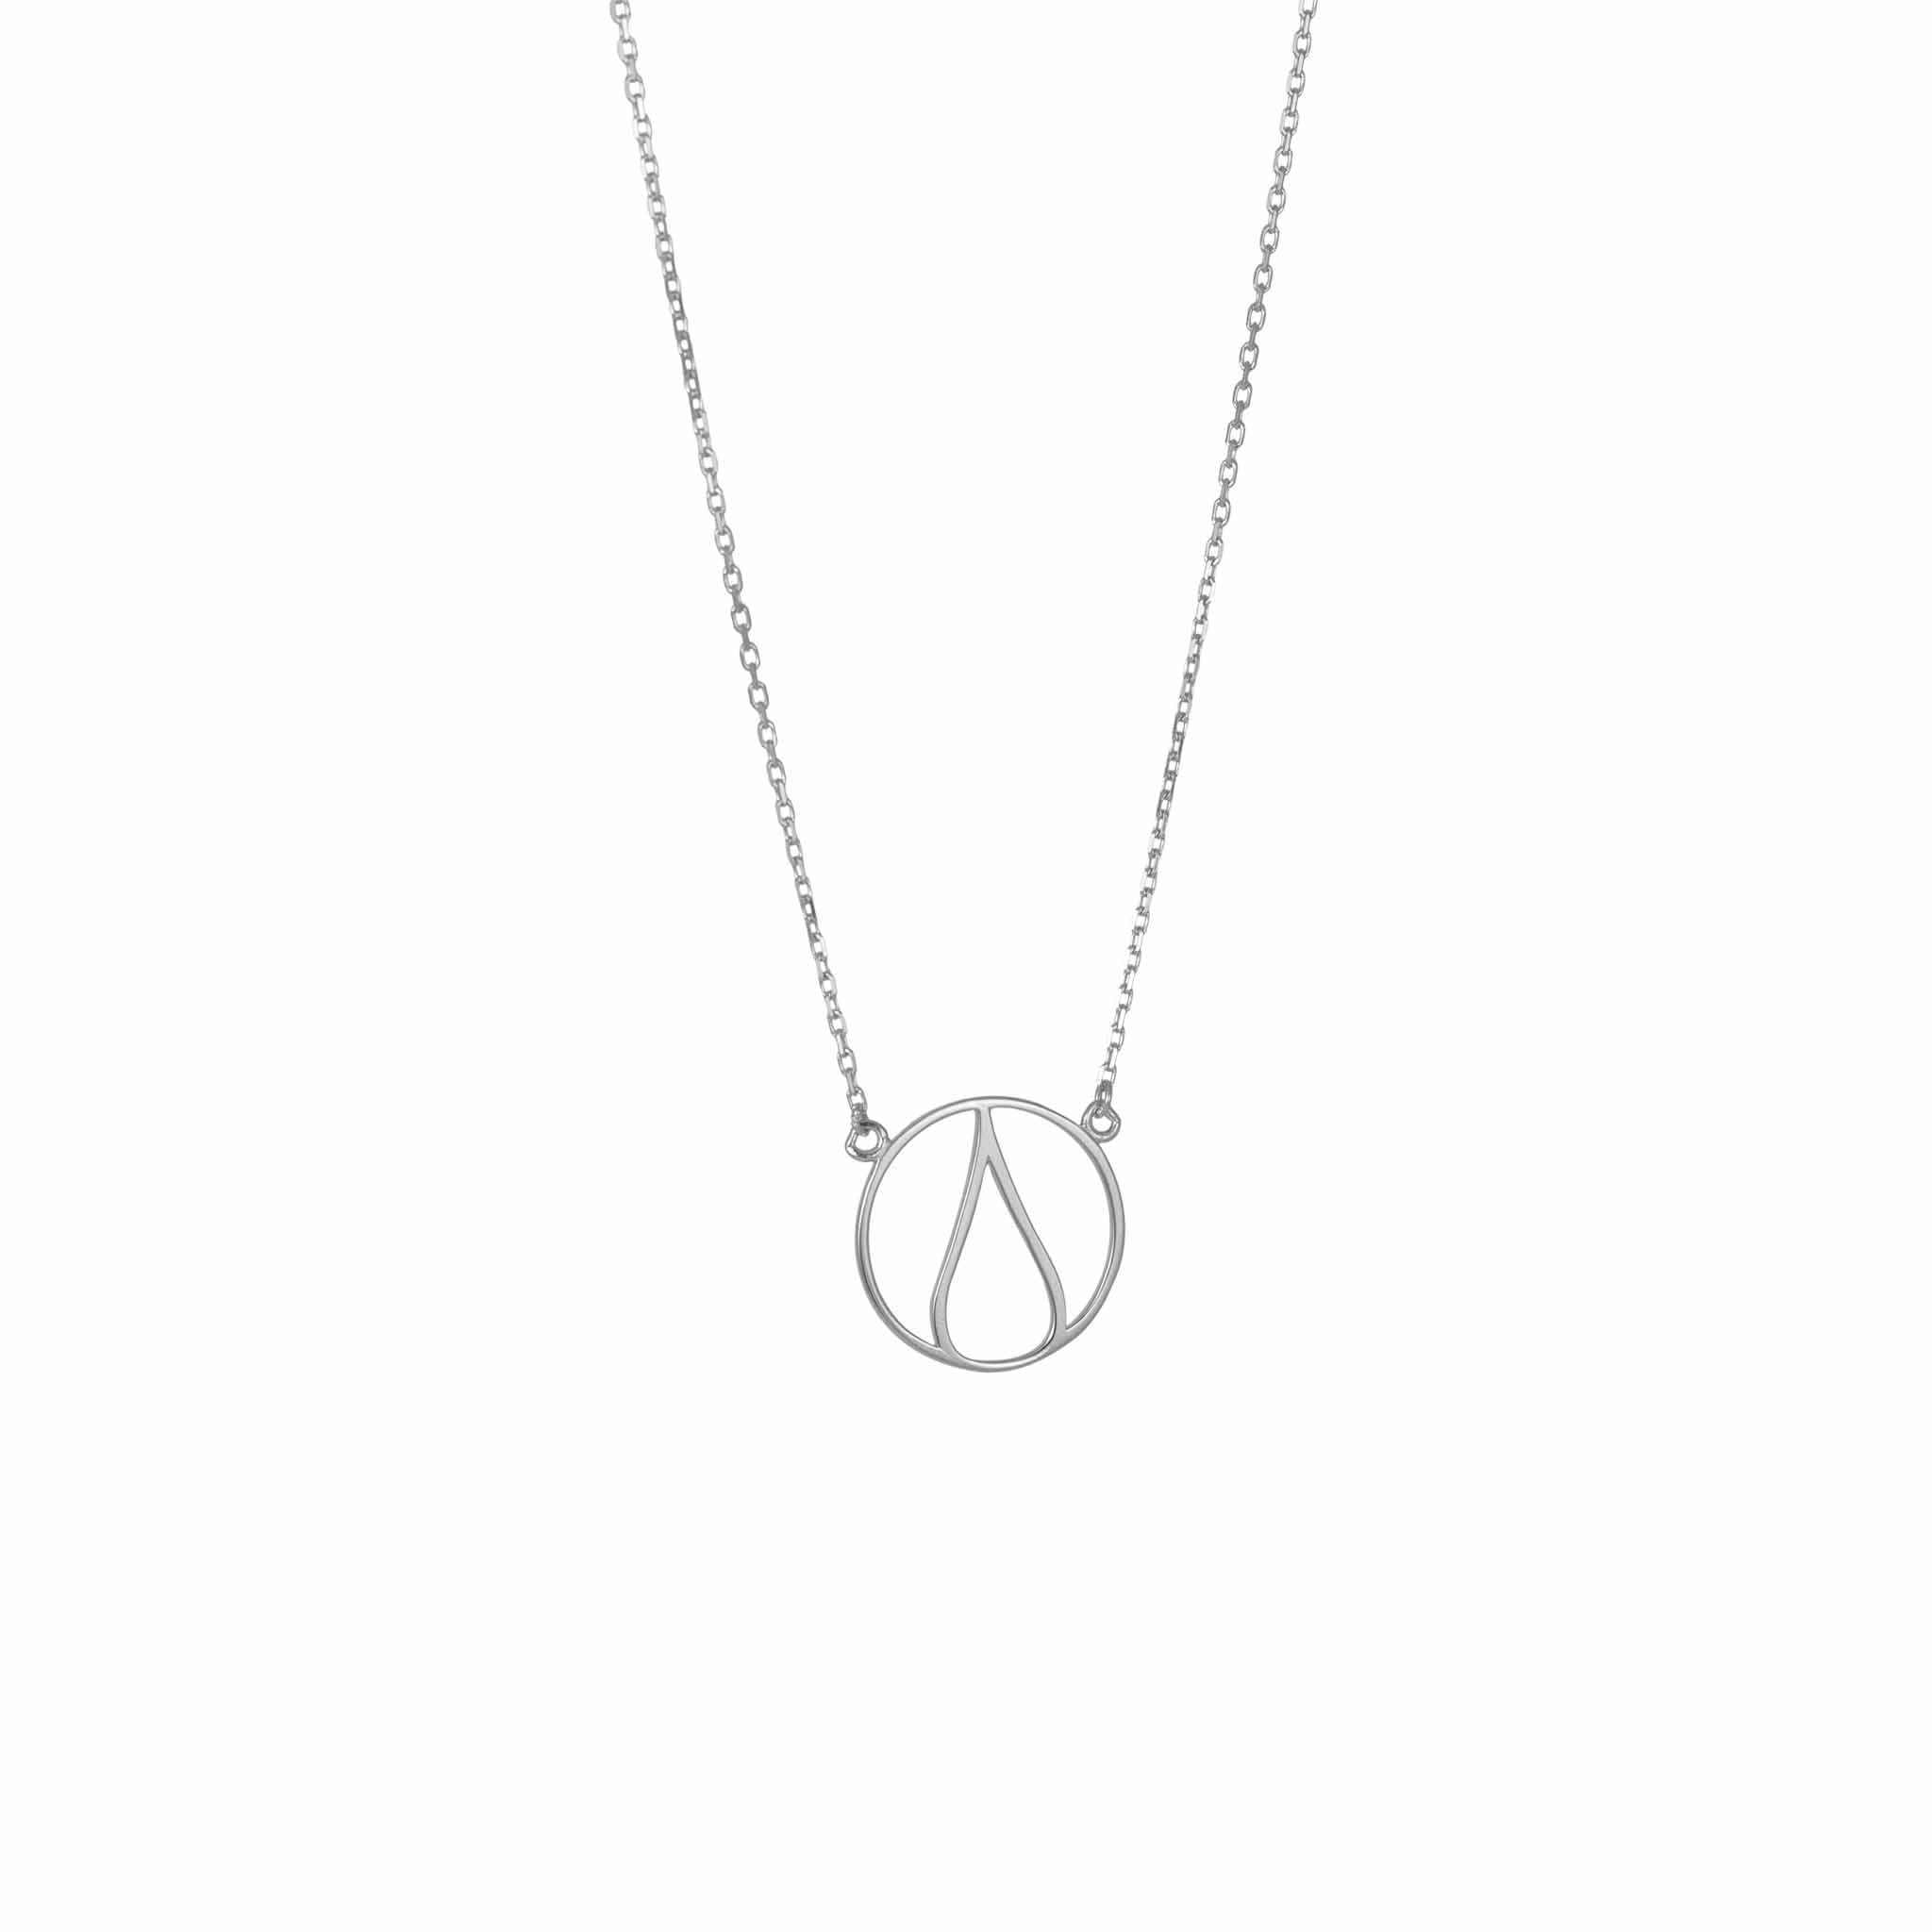 One Ocean Silver Necklace. The symbol is a water drop in a circle that symbolizes our earth. 100% recycled silver jewelry ethically made in Bali.